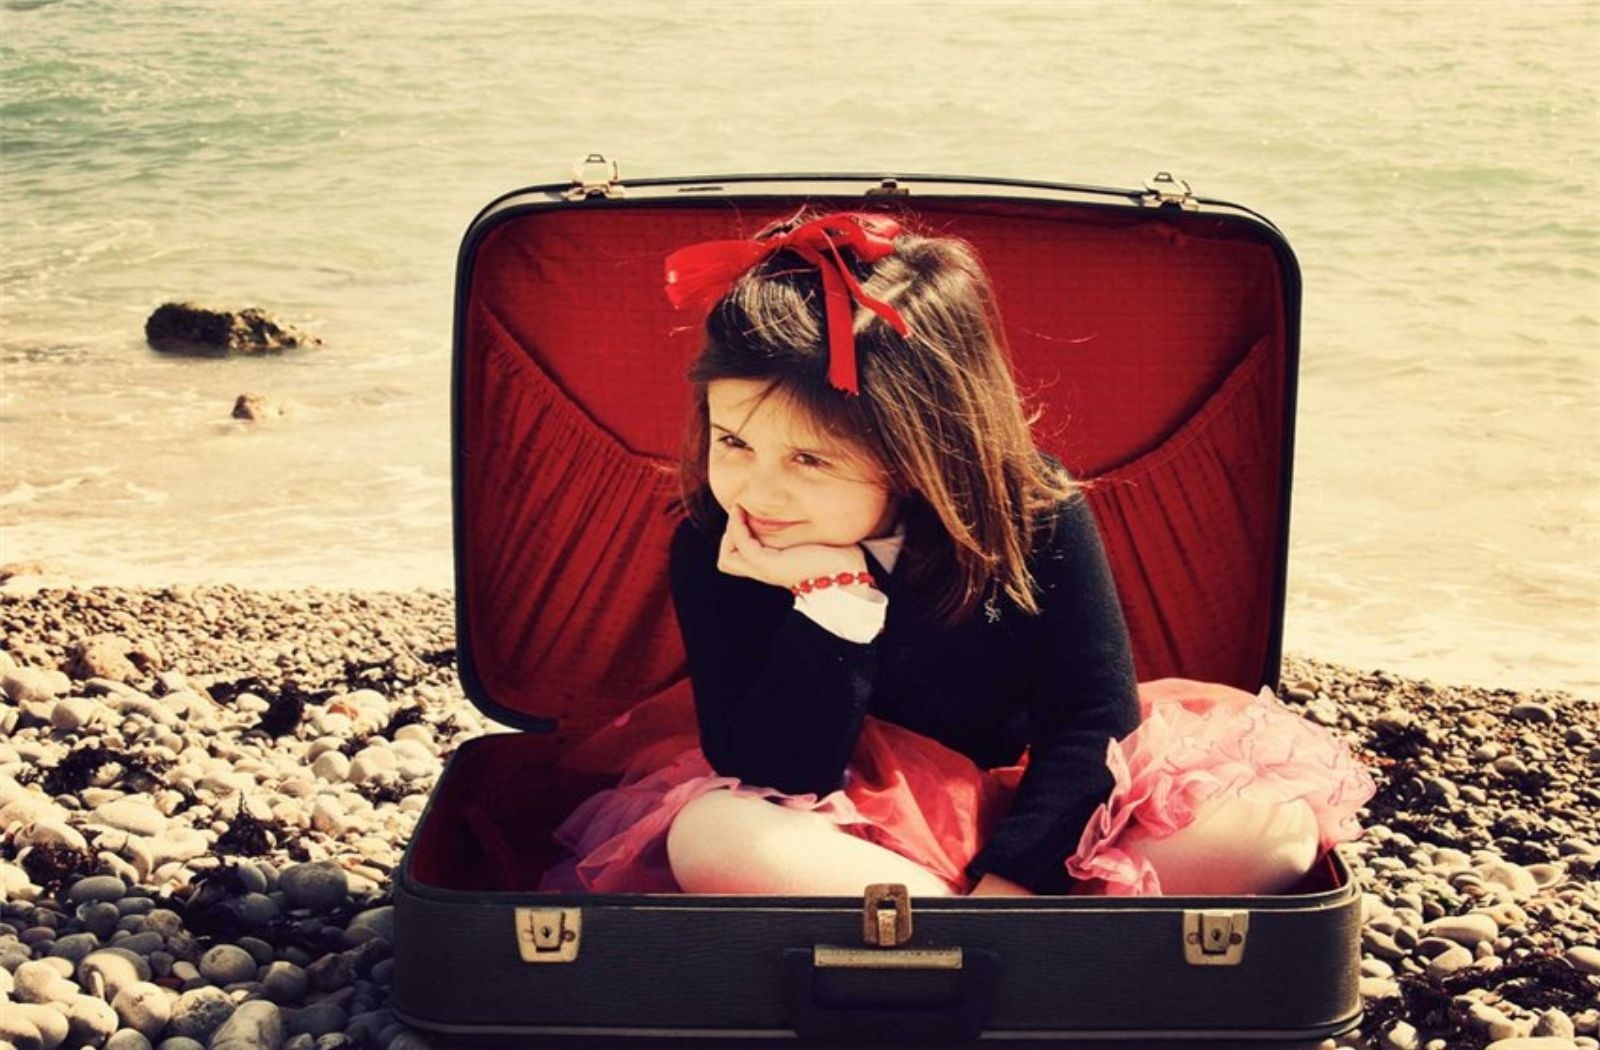 girl, a suitcase, sea, stones